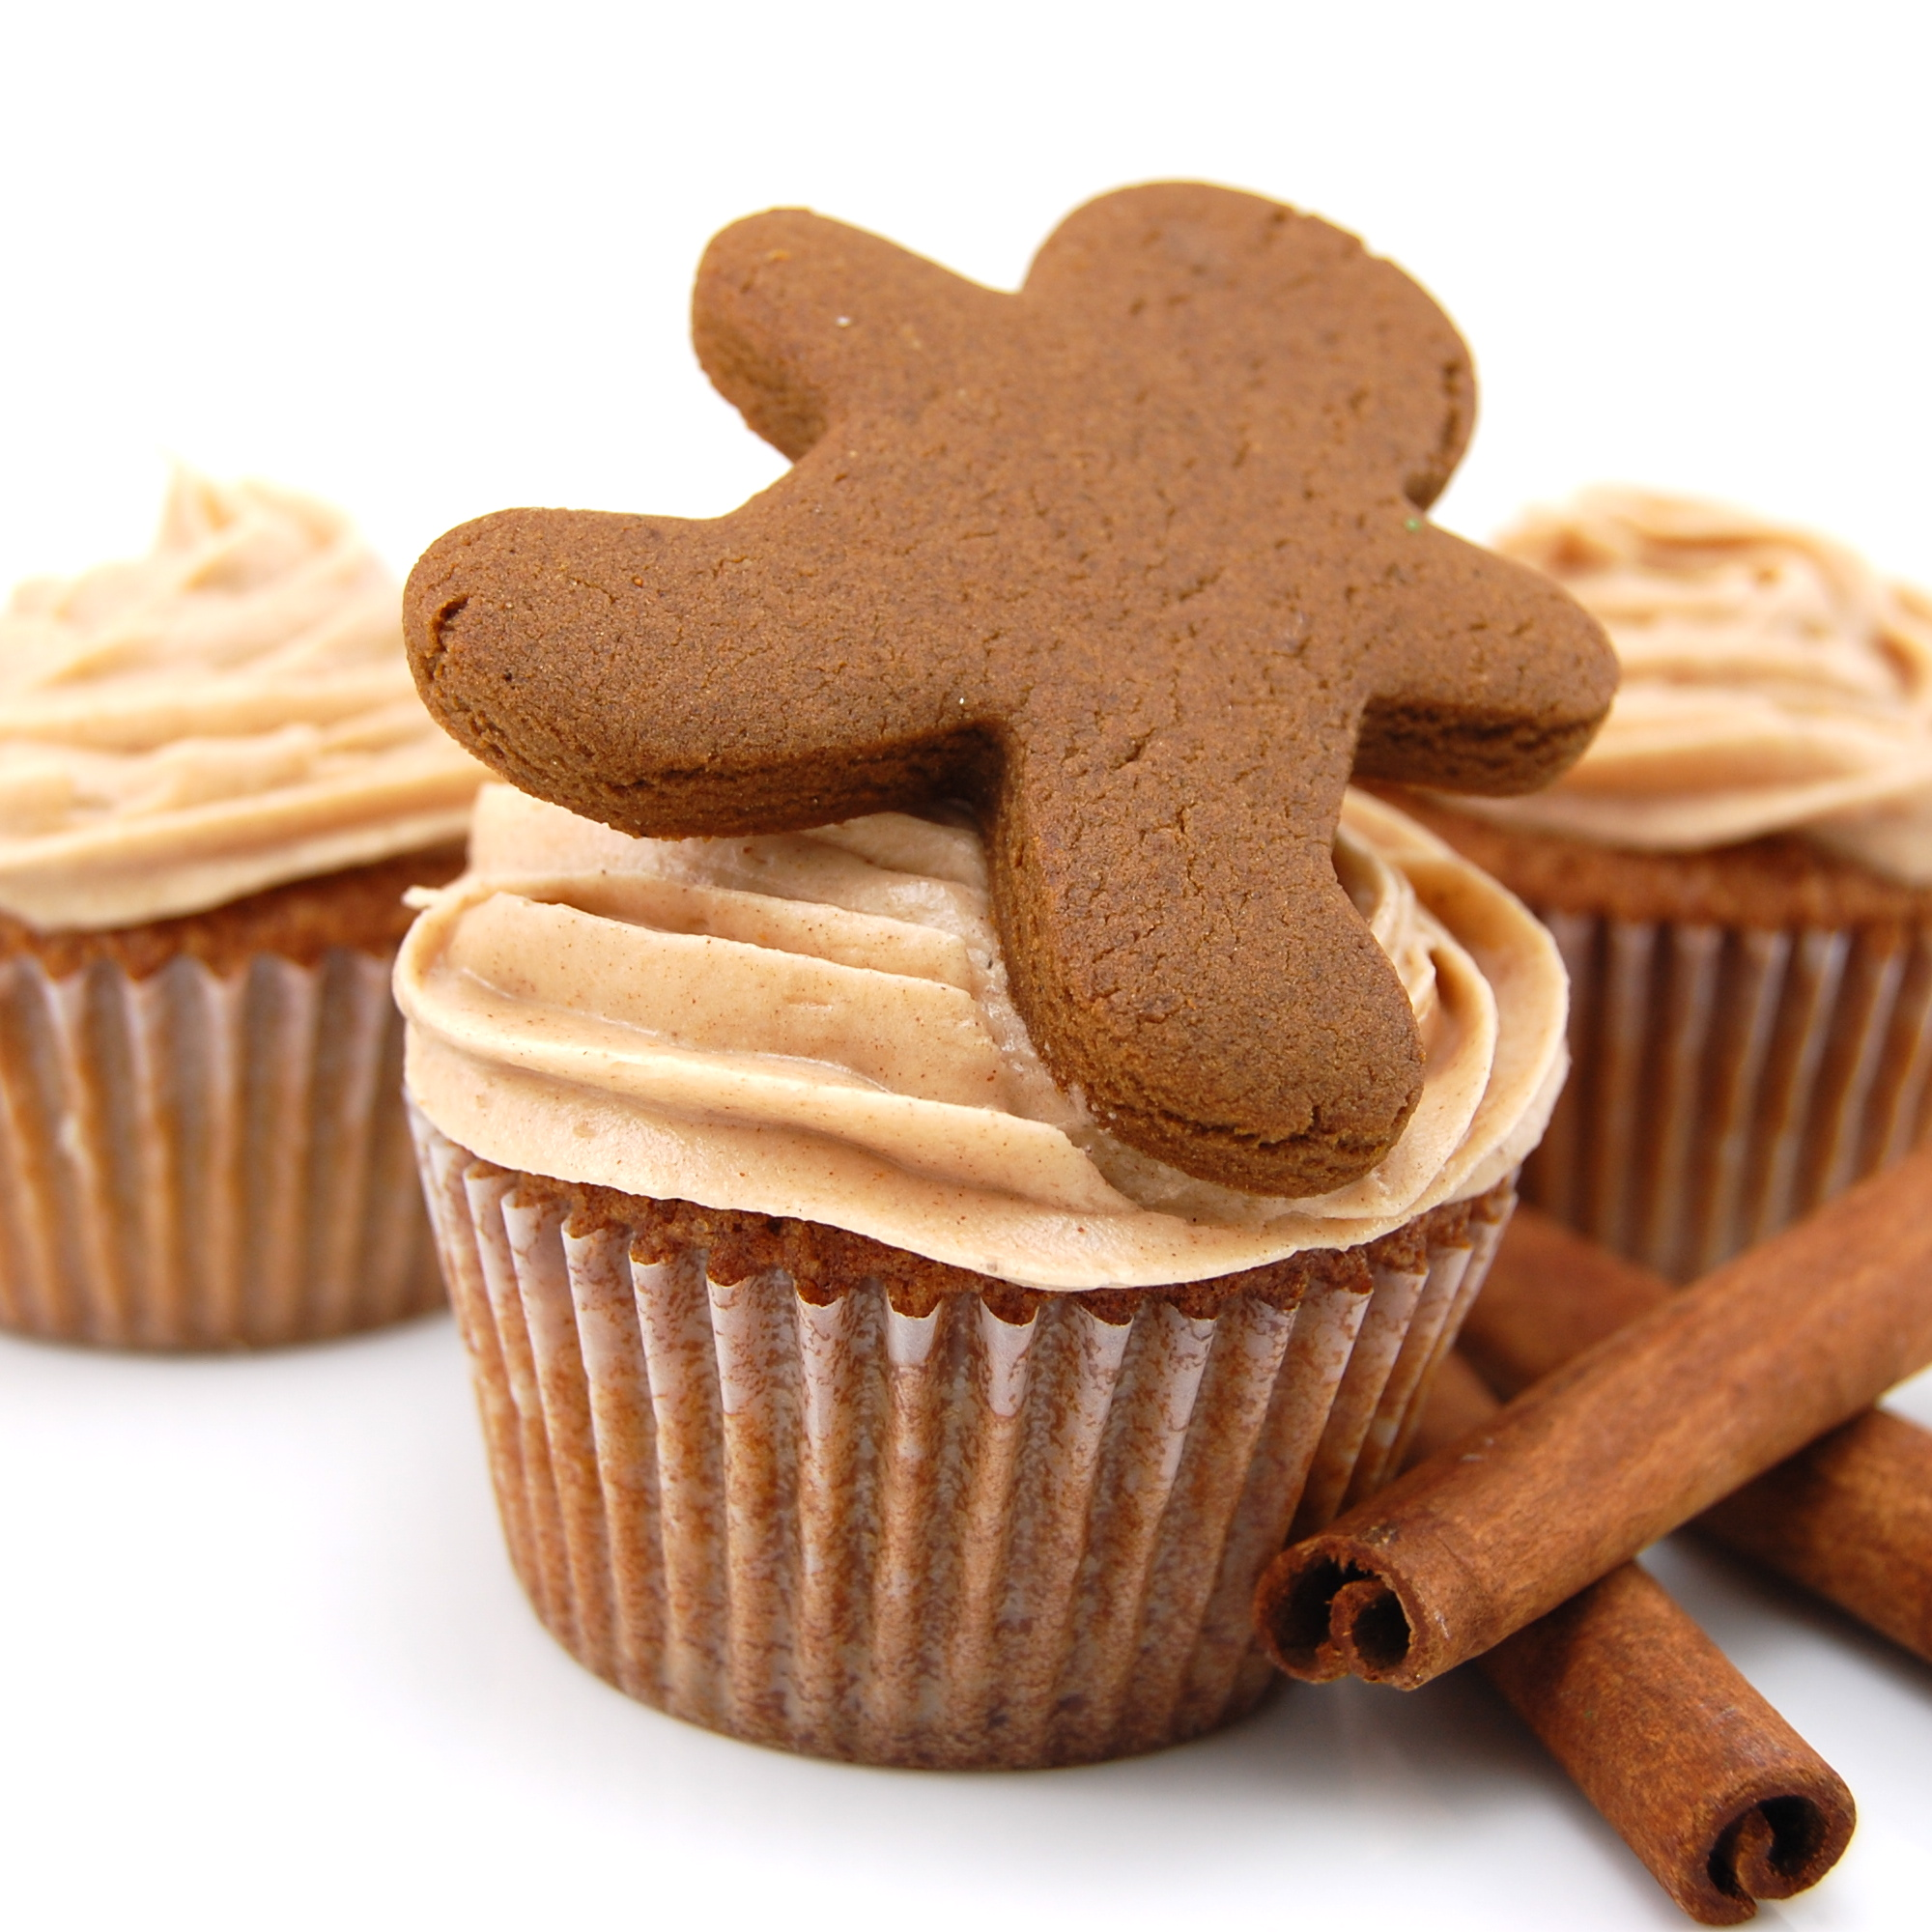 Gingerbread Cupcakes with Cinnamon Frosting